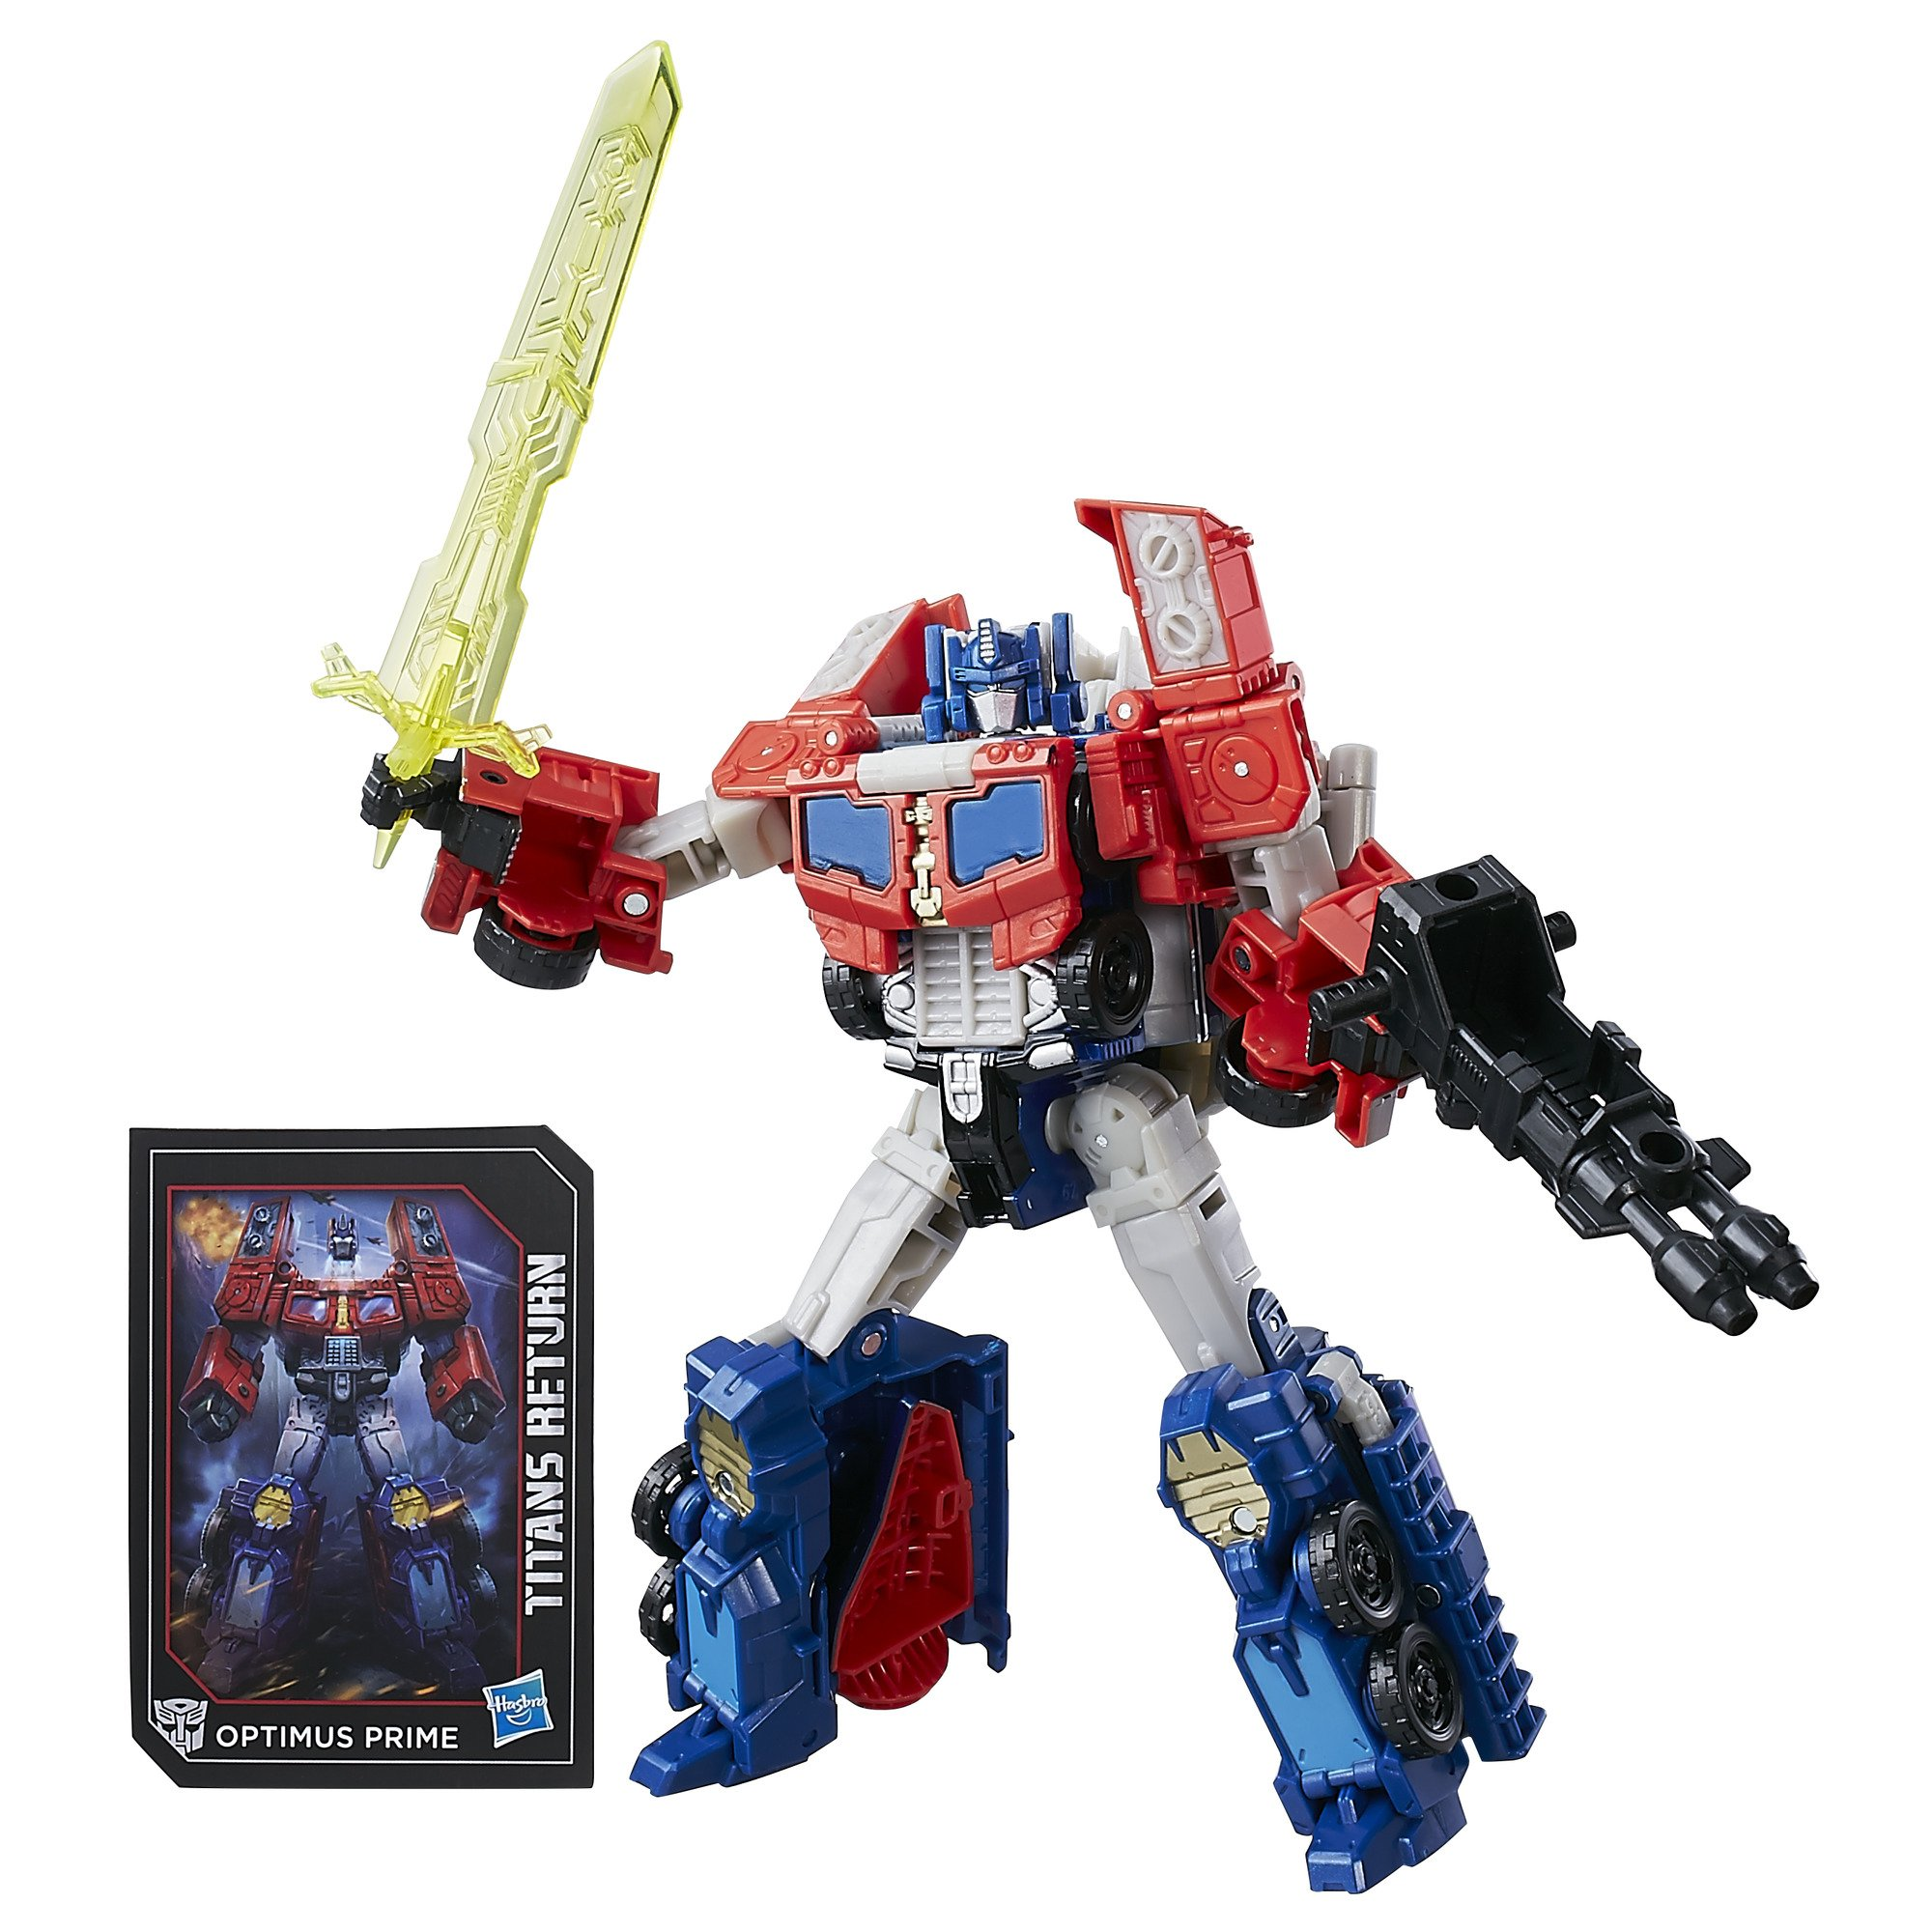 Transformers Generations Titans Return Voyager Class Optimus Prime and Diac, Multi Color product image